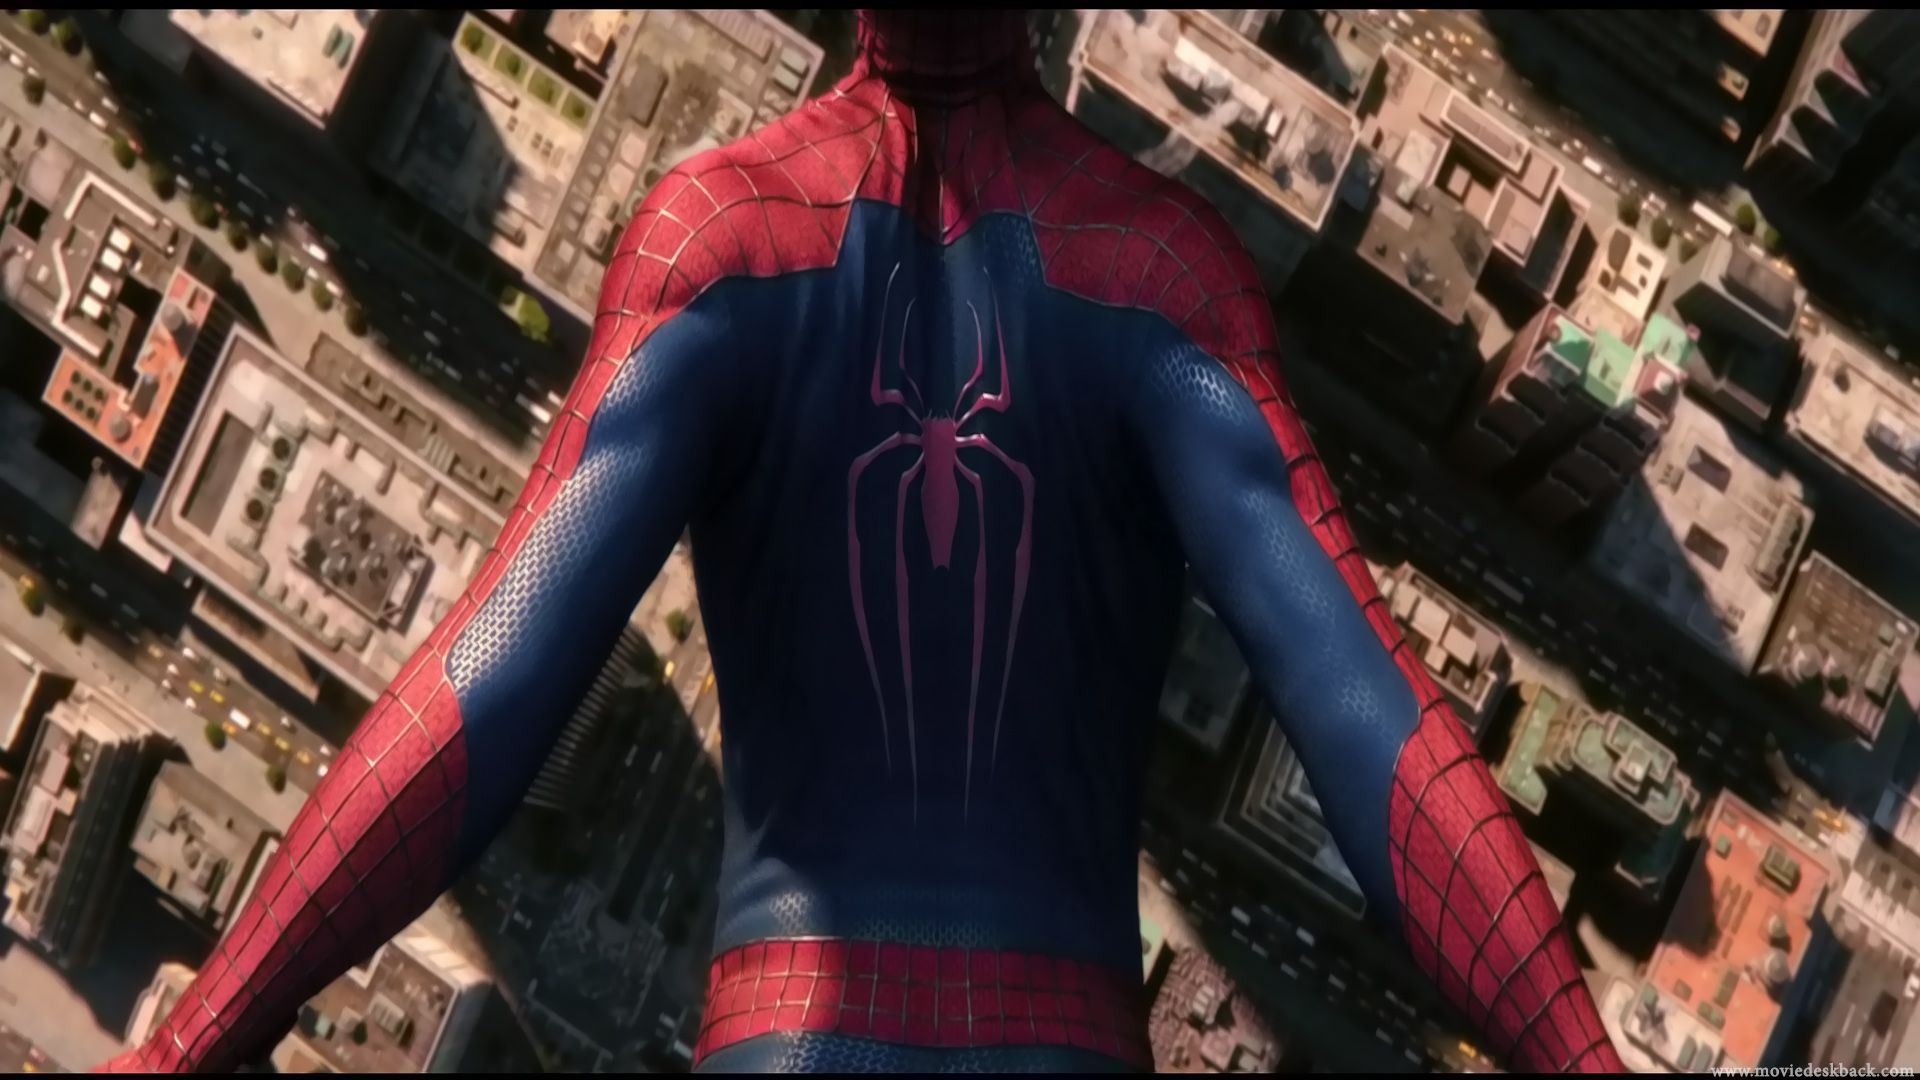 The Amazing Spider Man Wallpapers HD Group 1920x1080 Spiderman 2 39